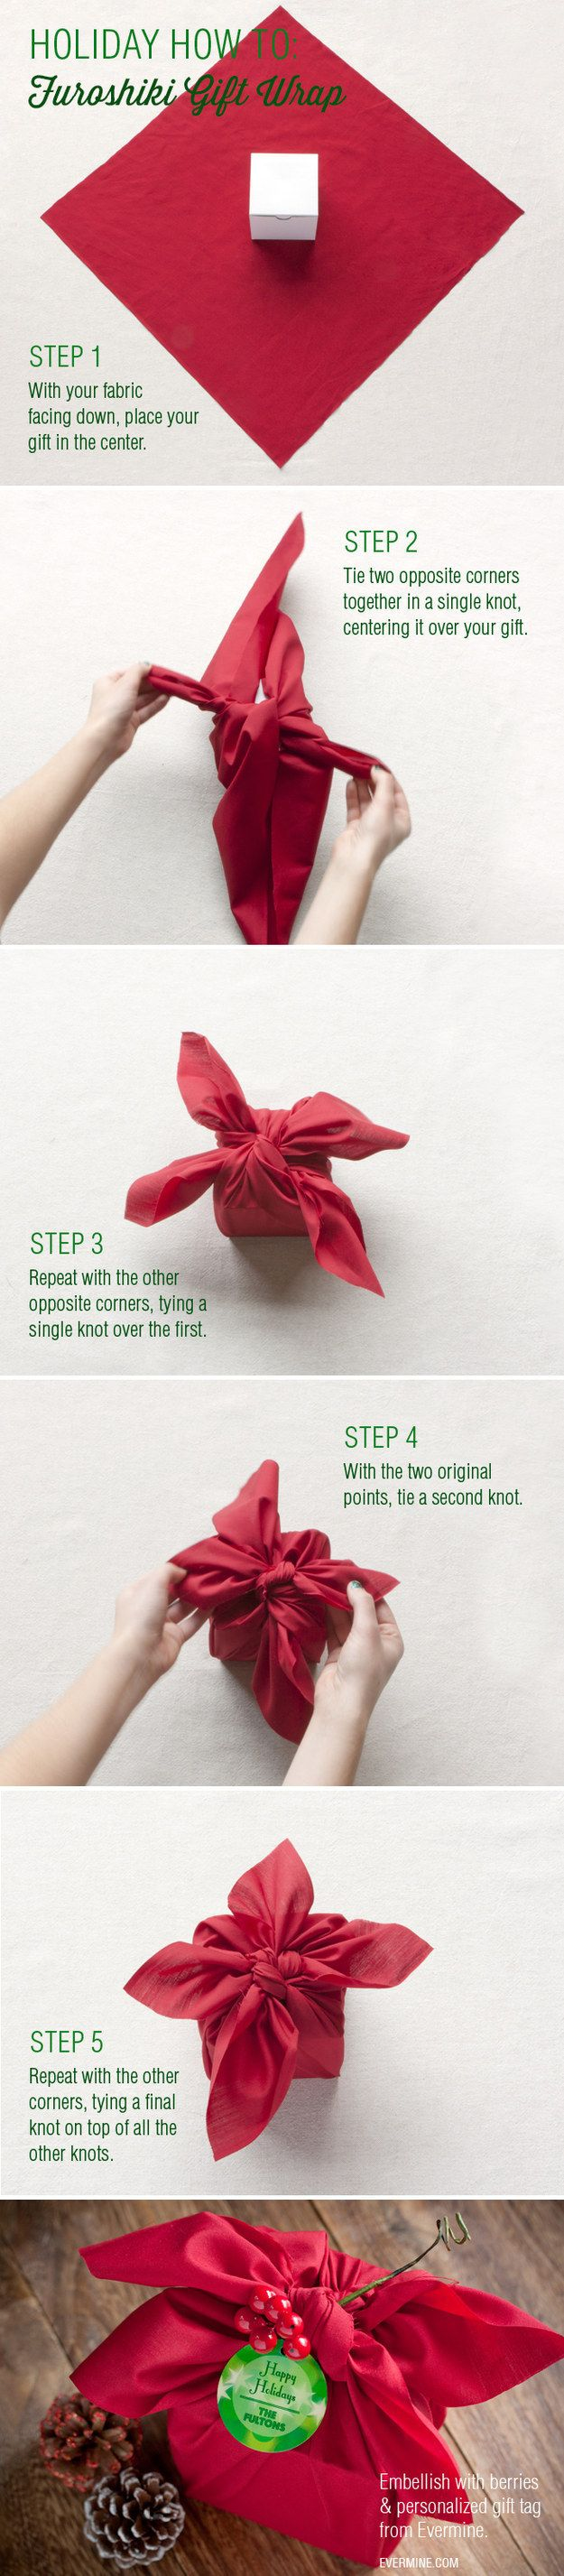 27 Clever Gift Wrapping Tricks For Lazy